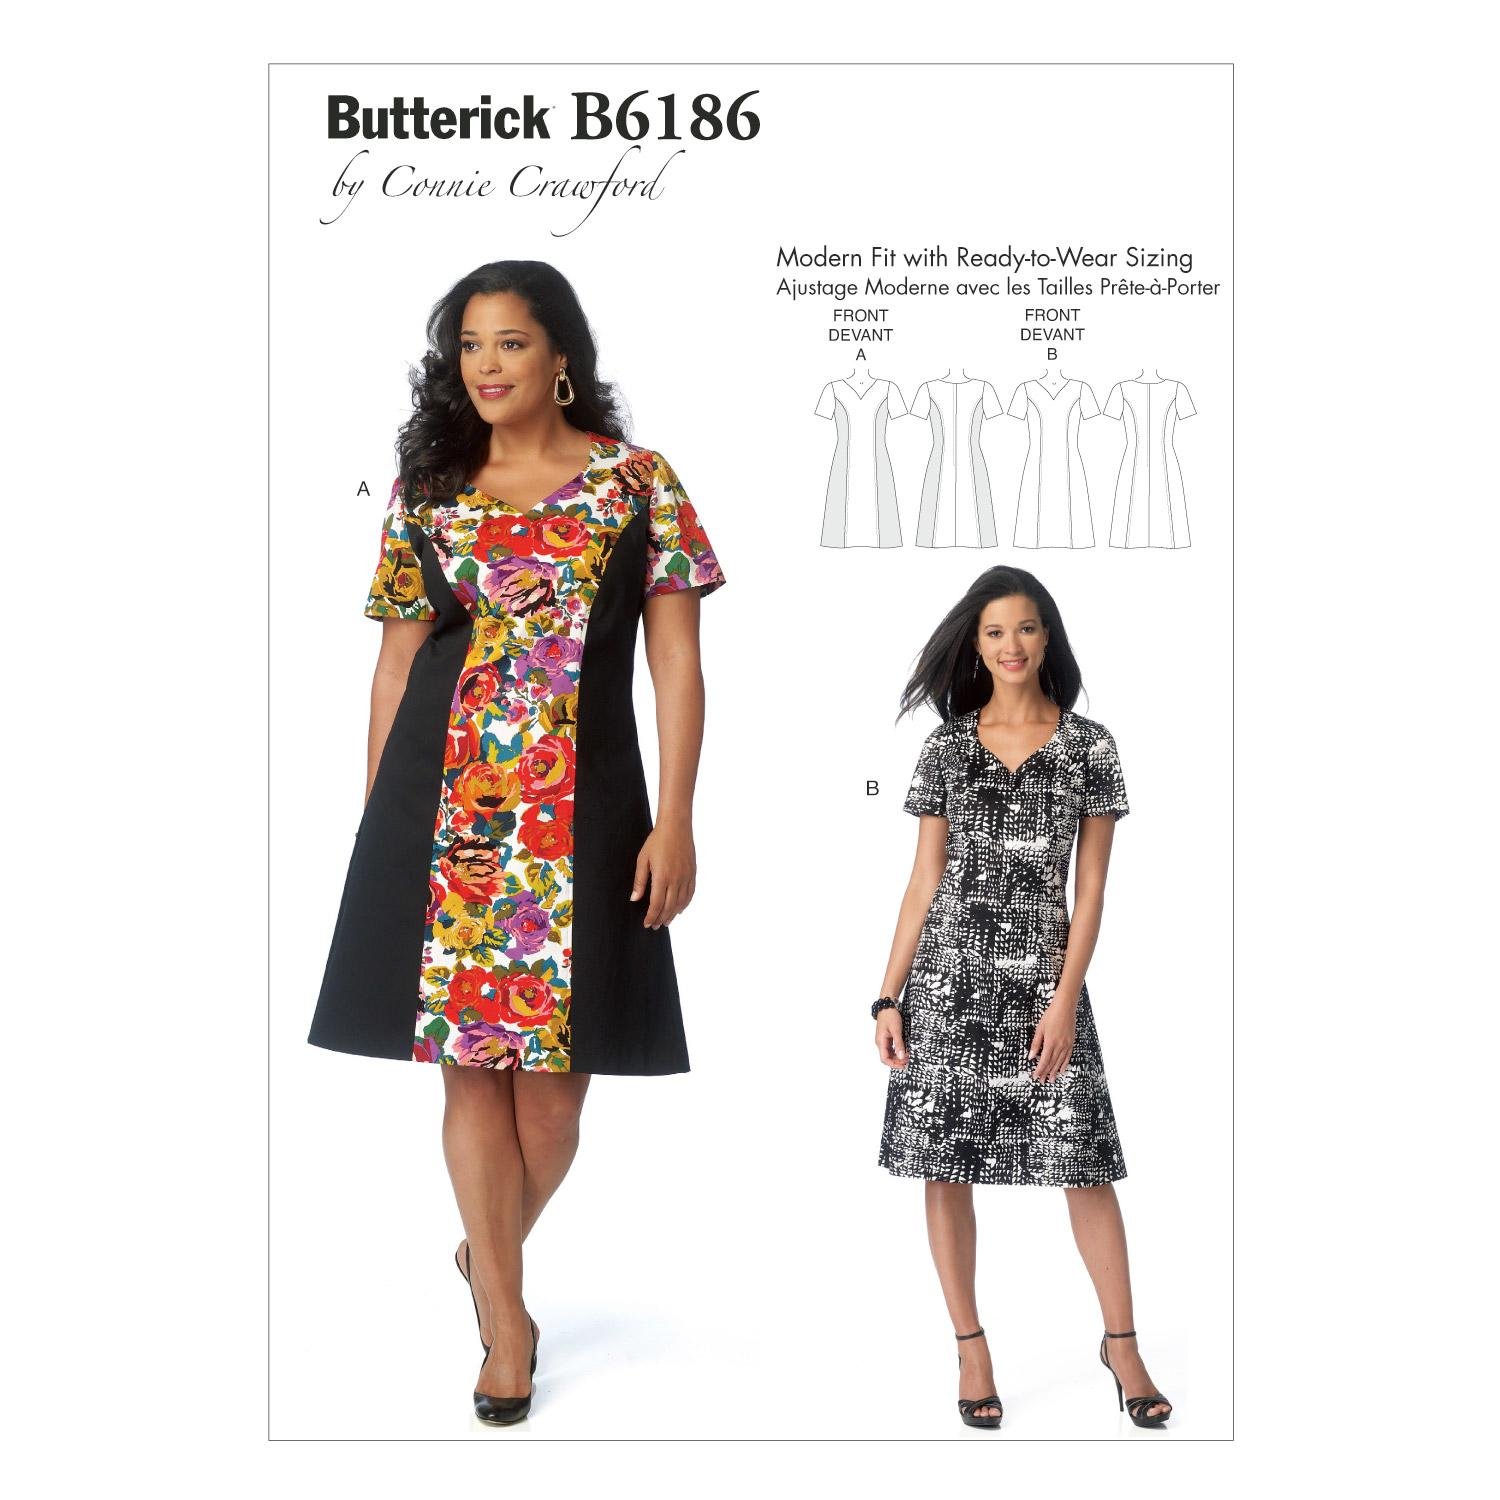 Butterick B6186 Misses'/Women's Dress